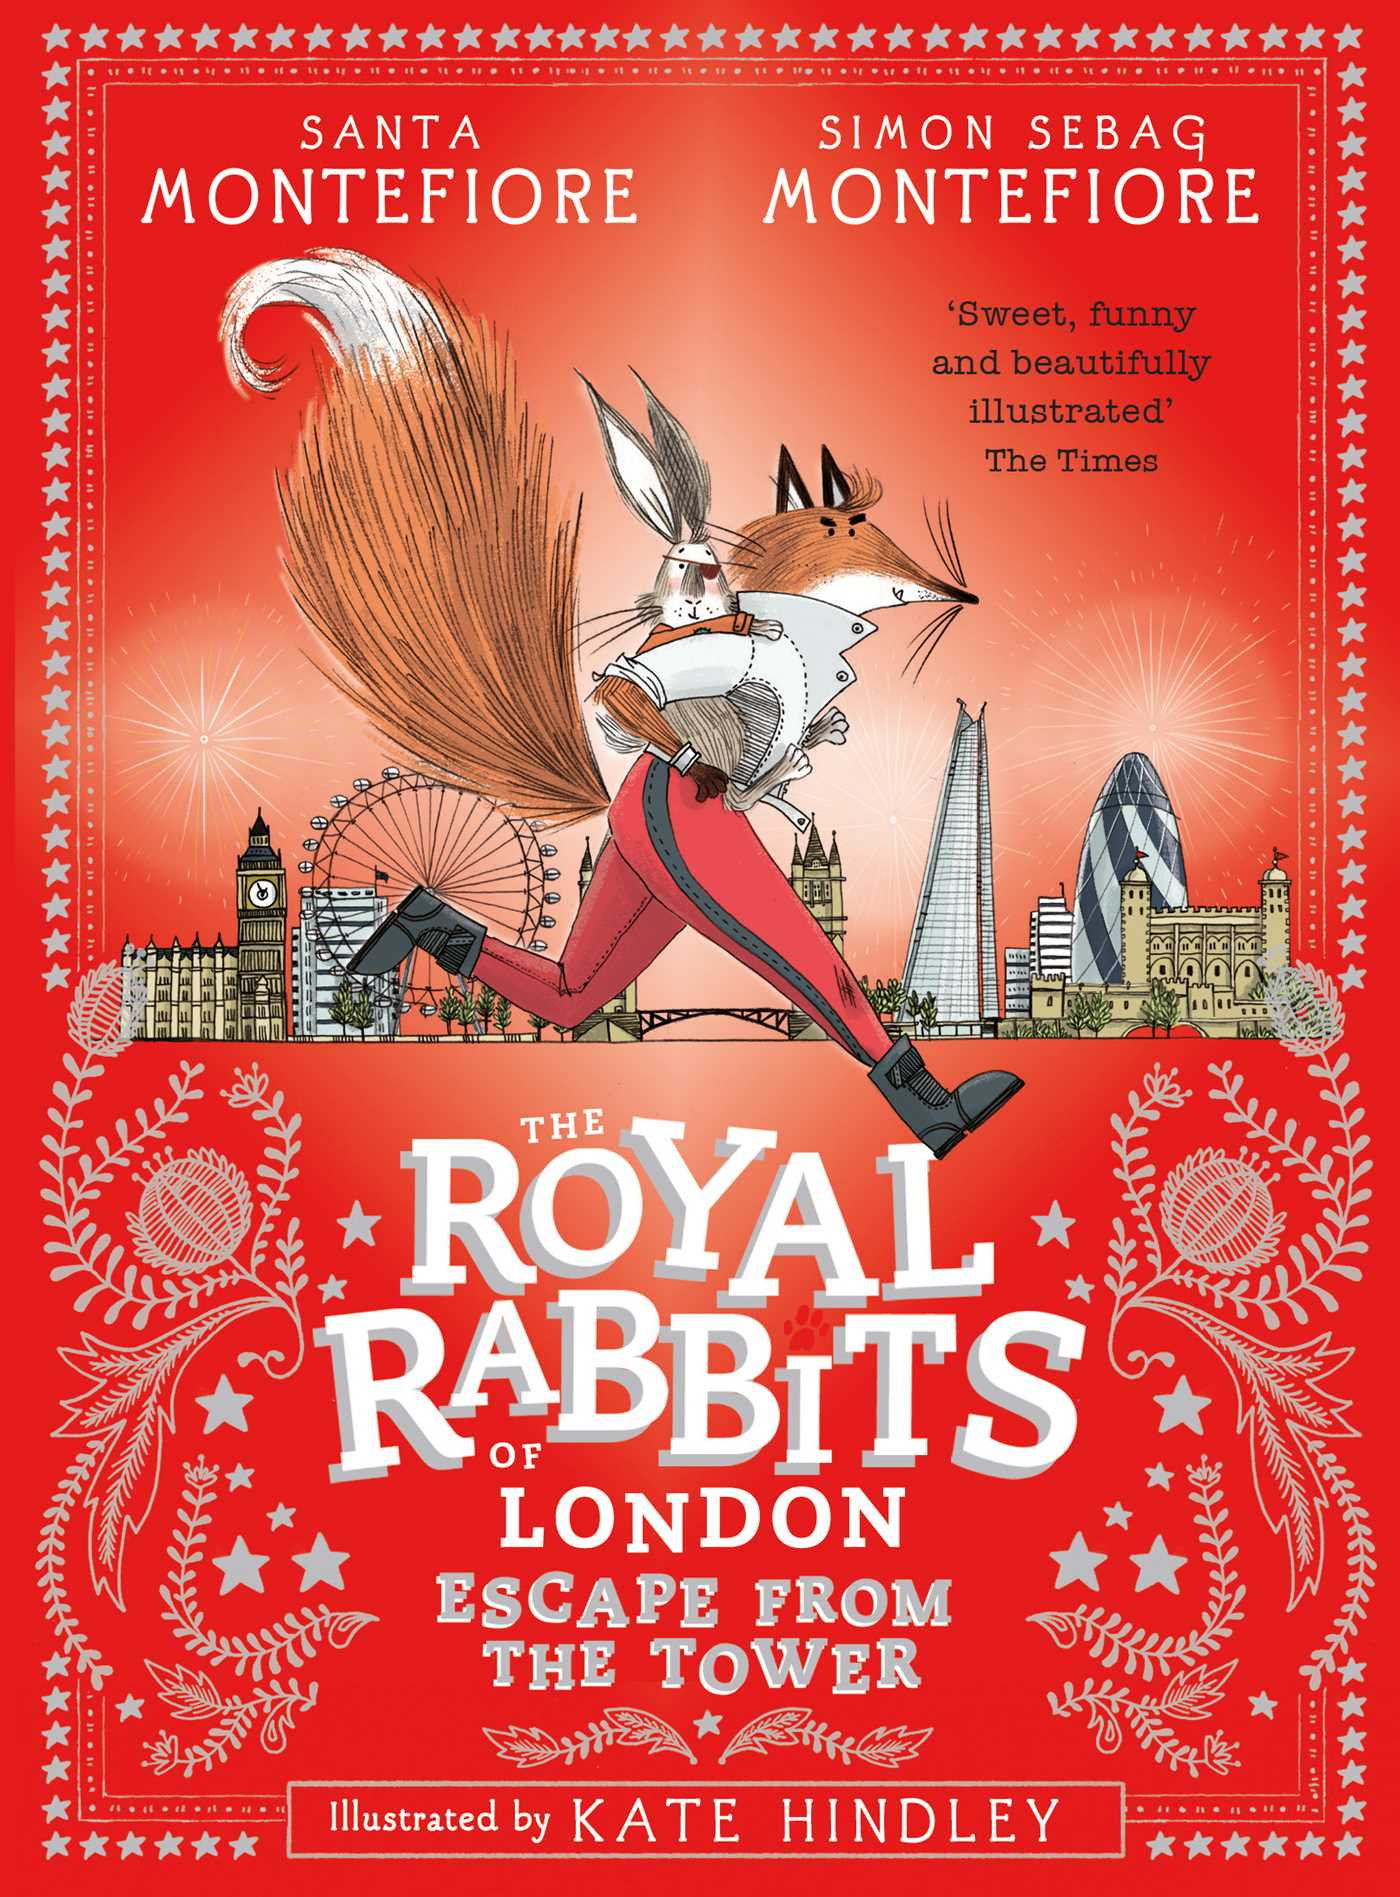 The royal rabbits of london escape from the tower 9781471157912 hr